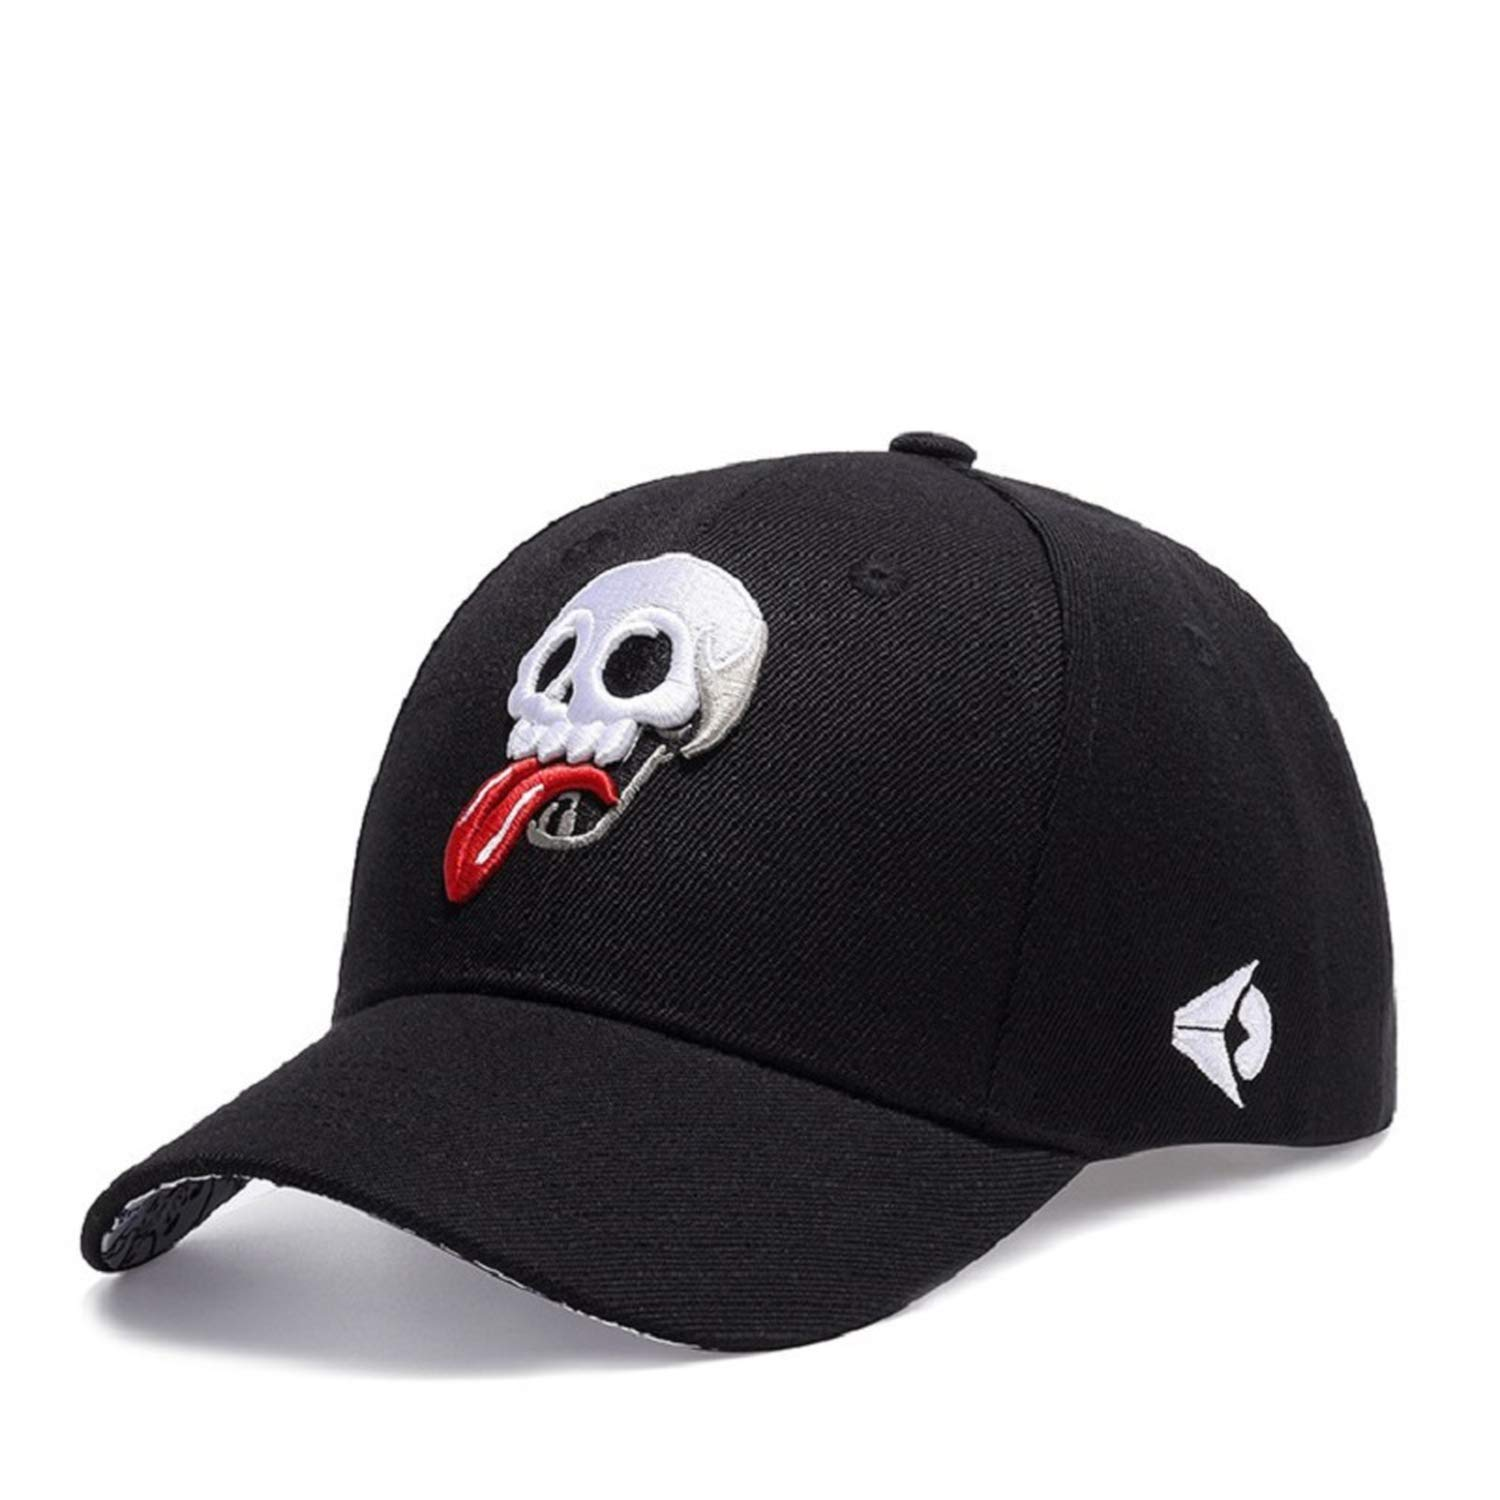 FUZE Brand Unisex Baseball Cap Skull Embroidered Snapback Hat Outdoor Sport Caps